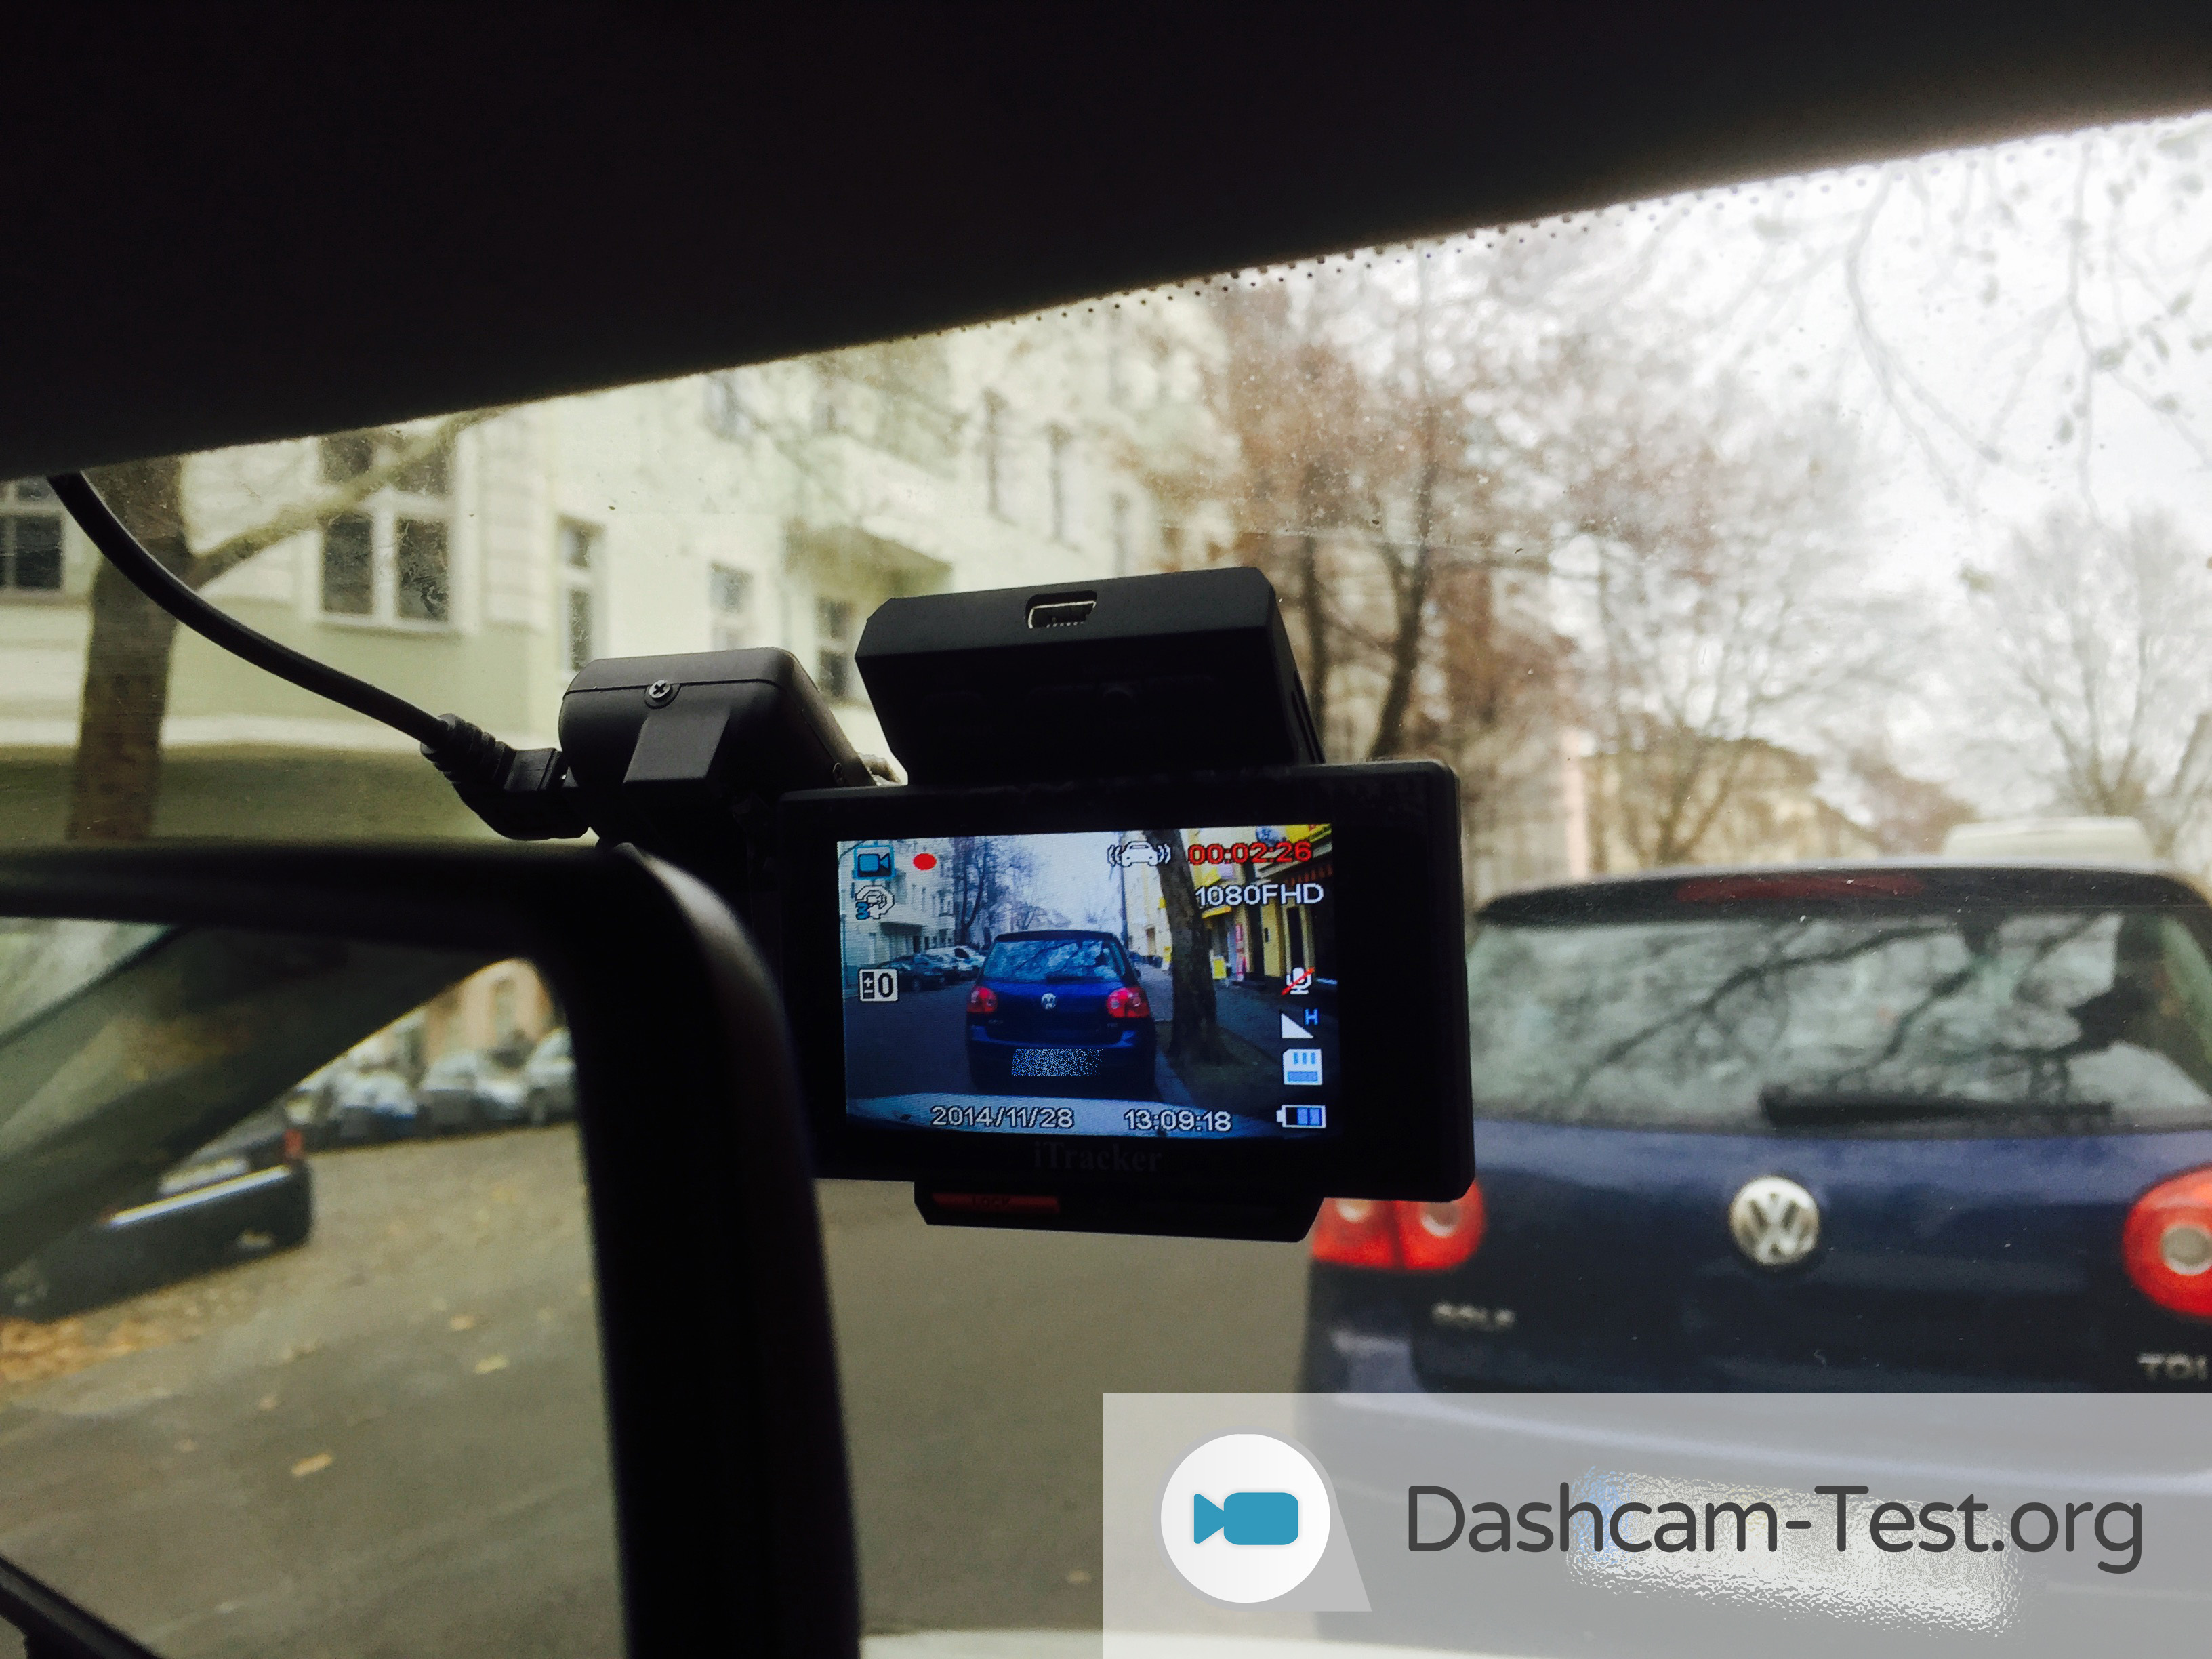 testbericht itracker stealthcam dashcam test 2018. Black Bedroom Furniture Sets. Home Design Ideas